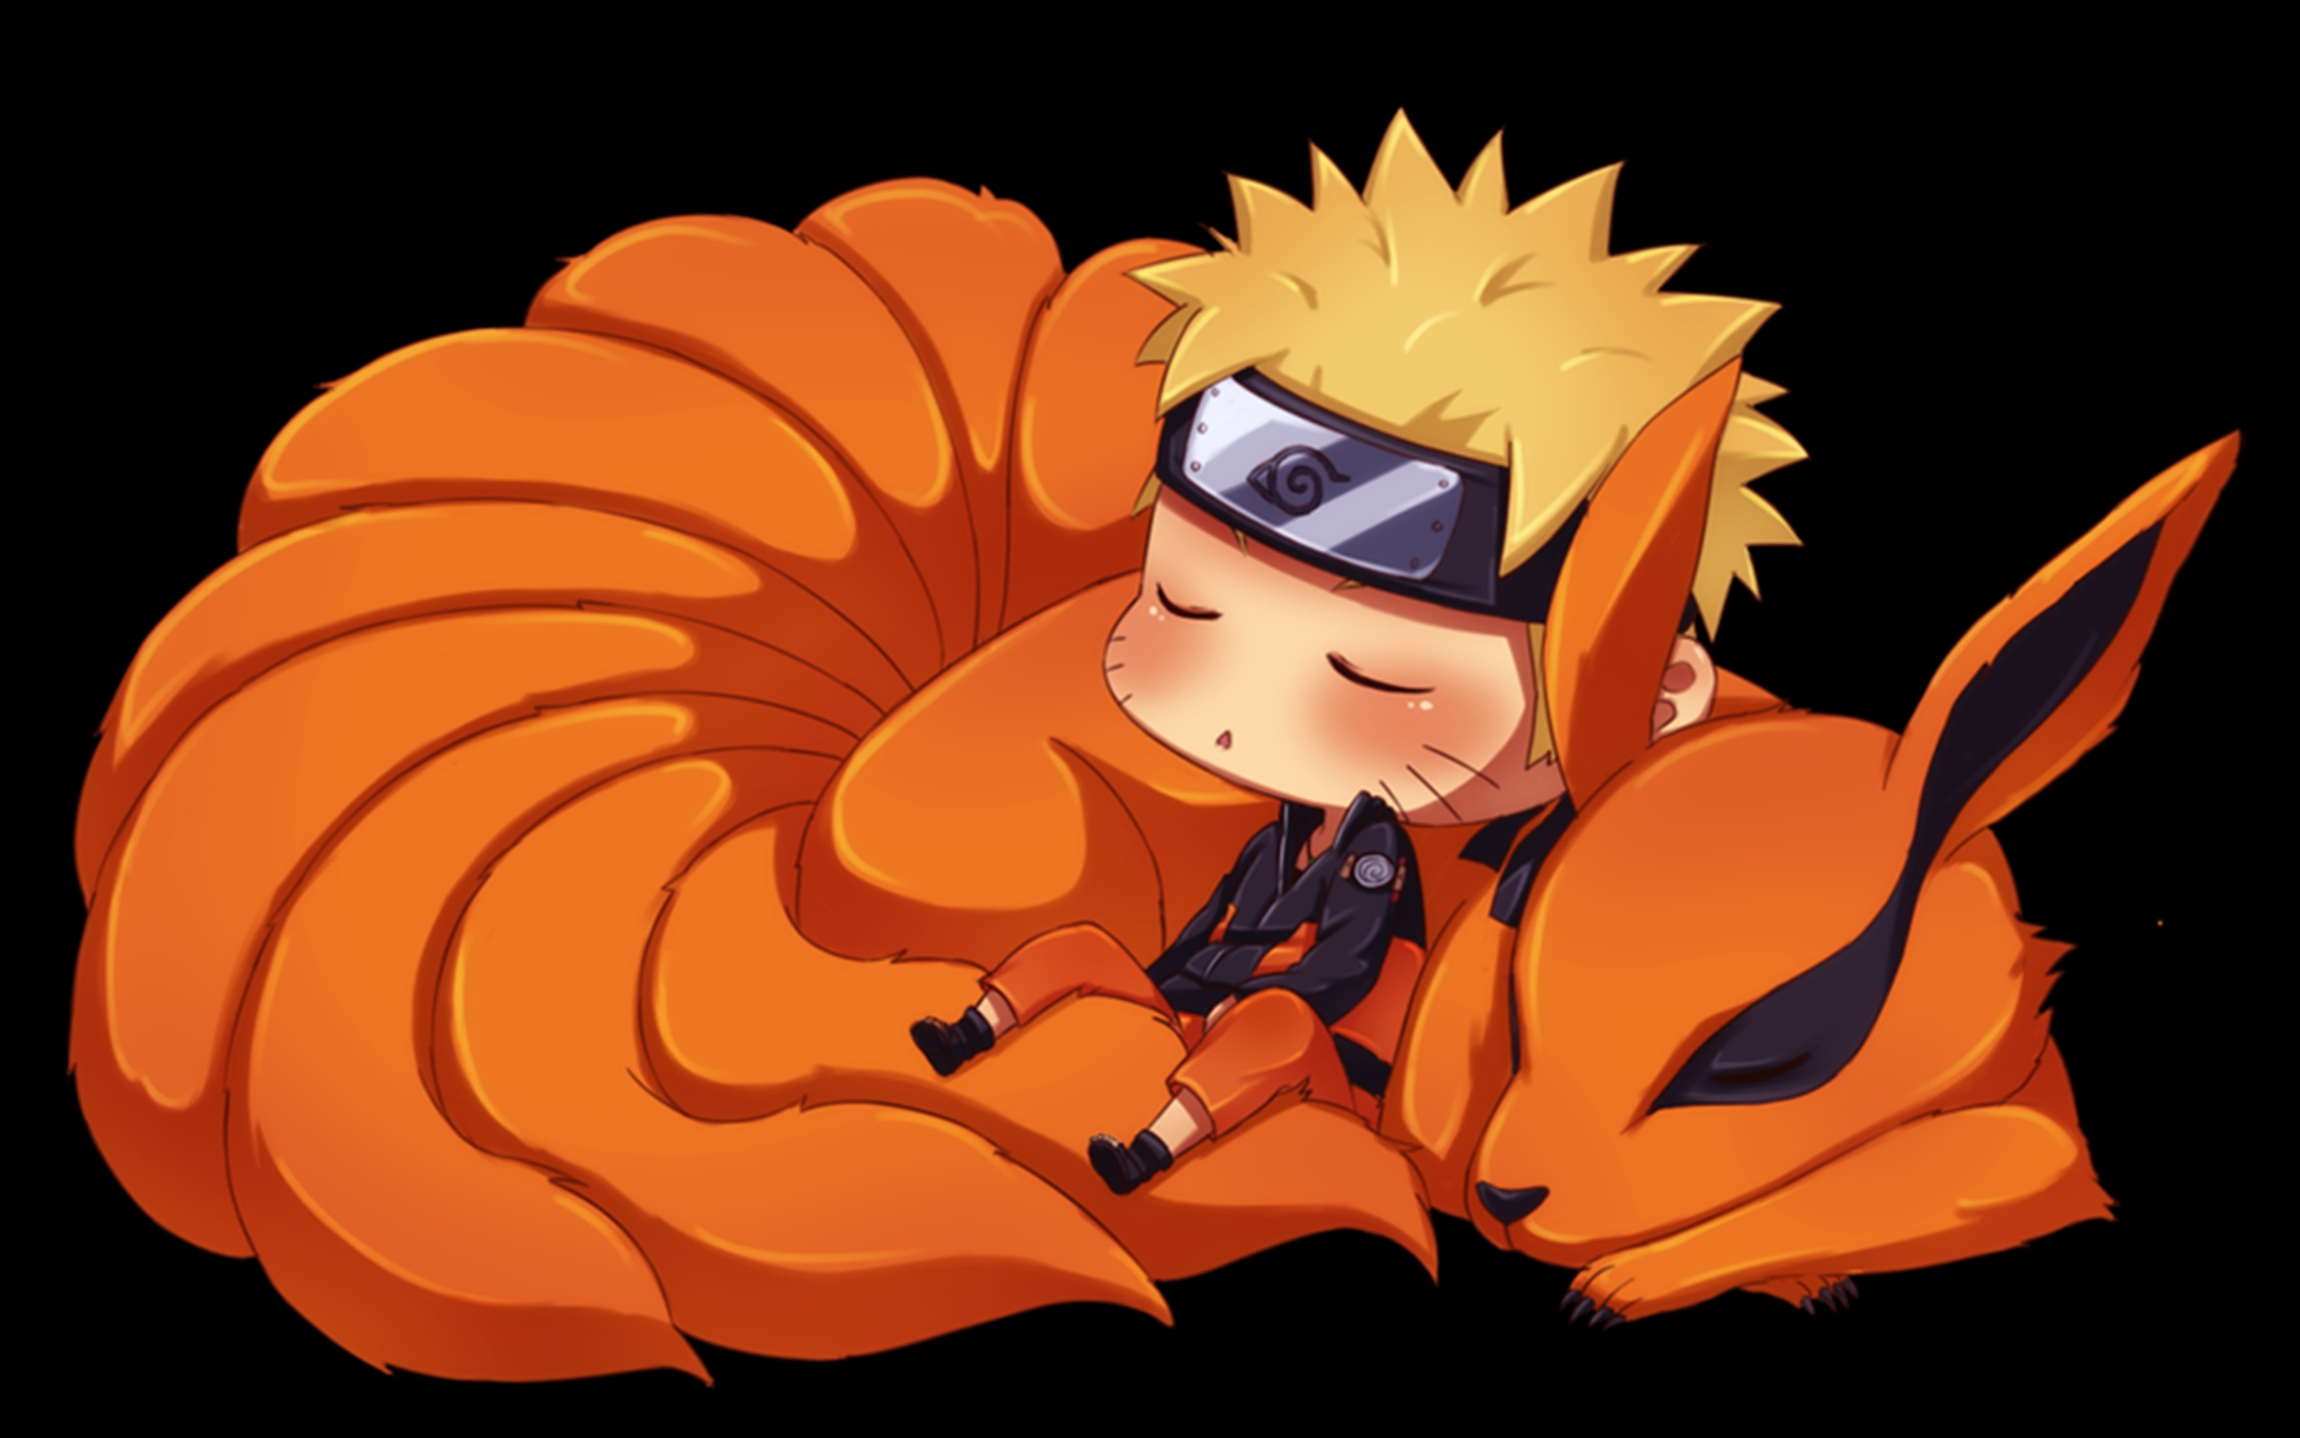 Naruto And Kyuubi Chibi HD Wallpaper